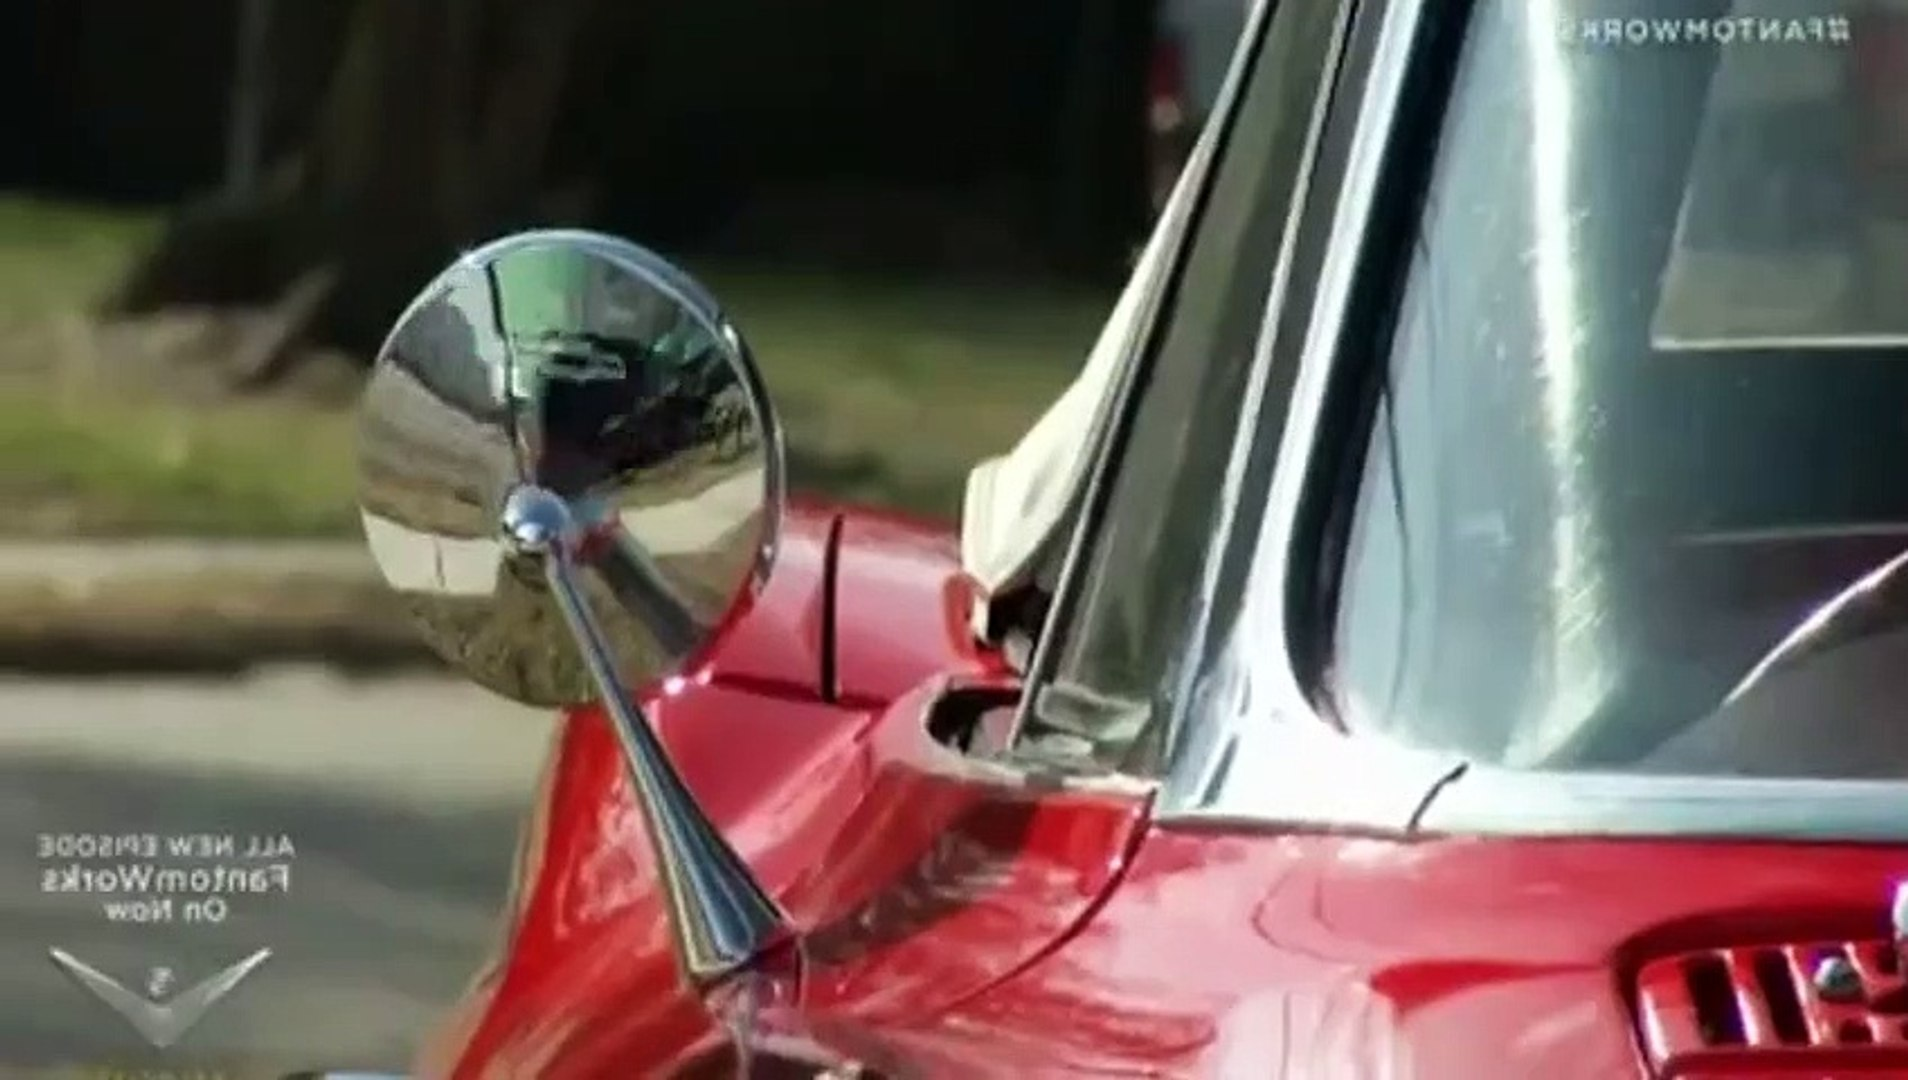 FantomWorks S01 E04 1970 Chevelle and 1926 Velie - Part 02